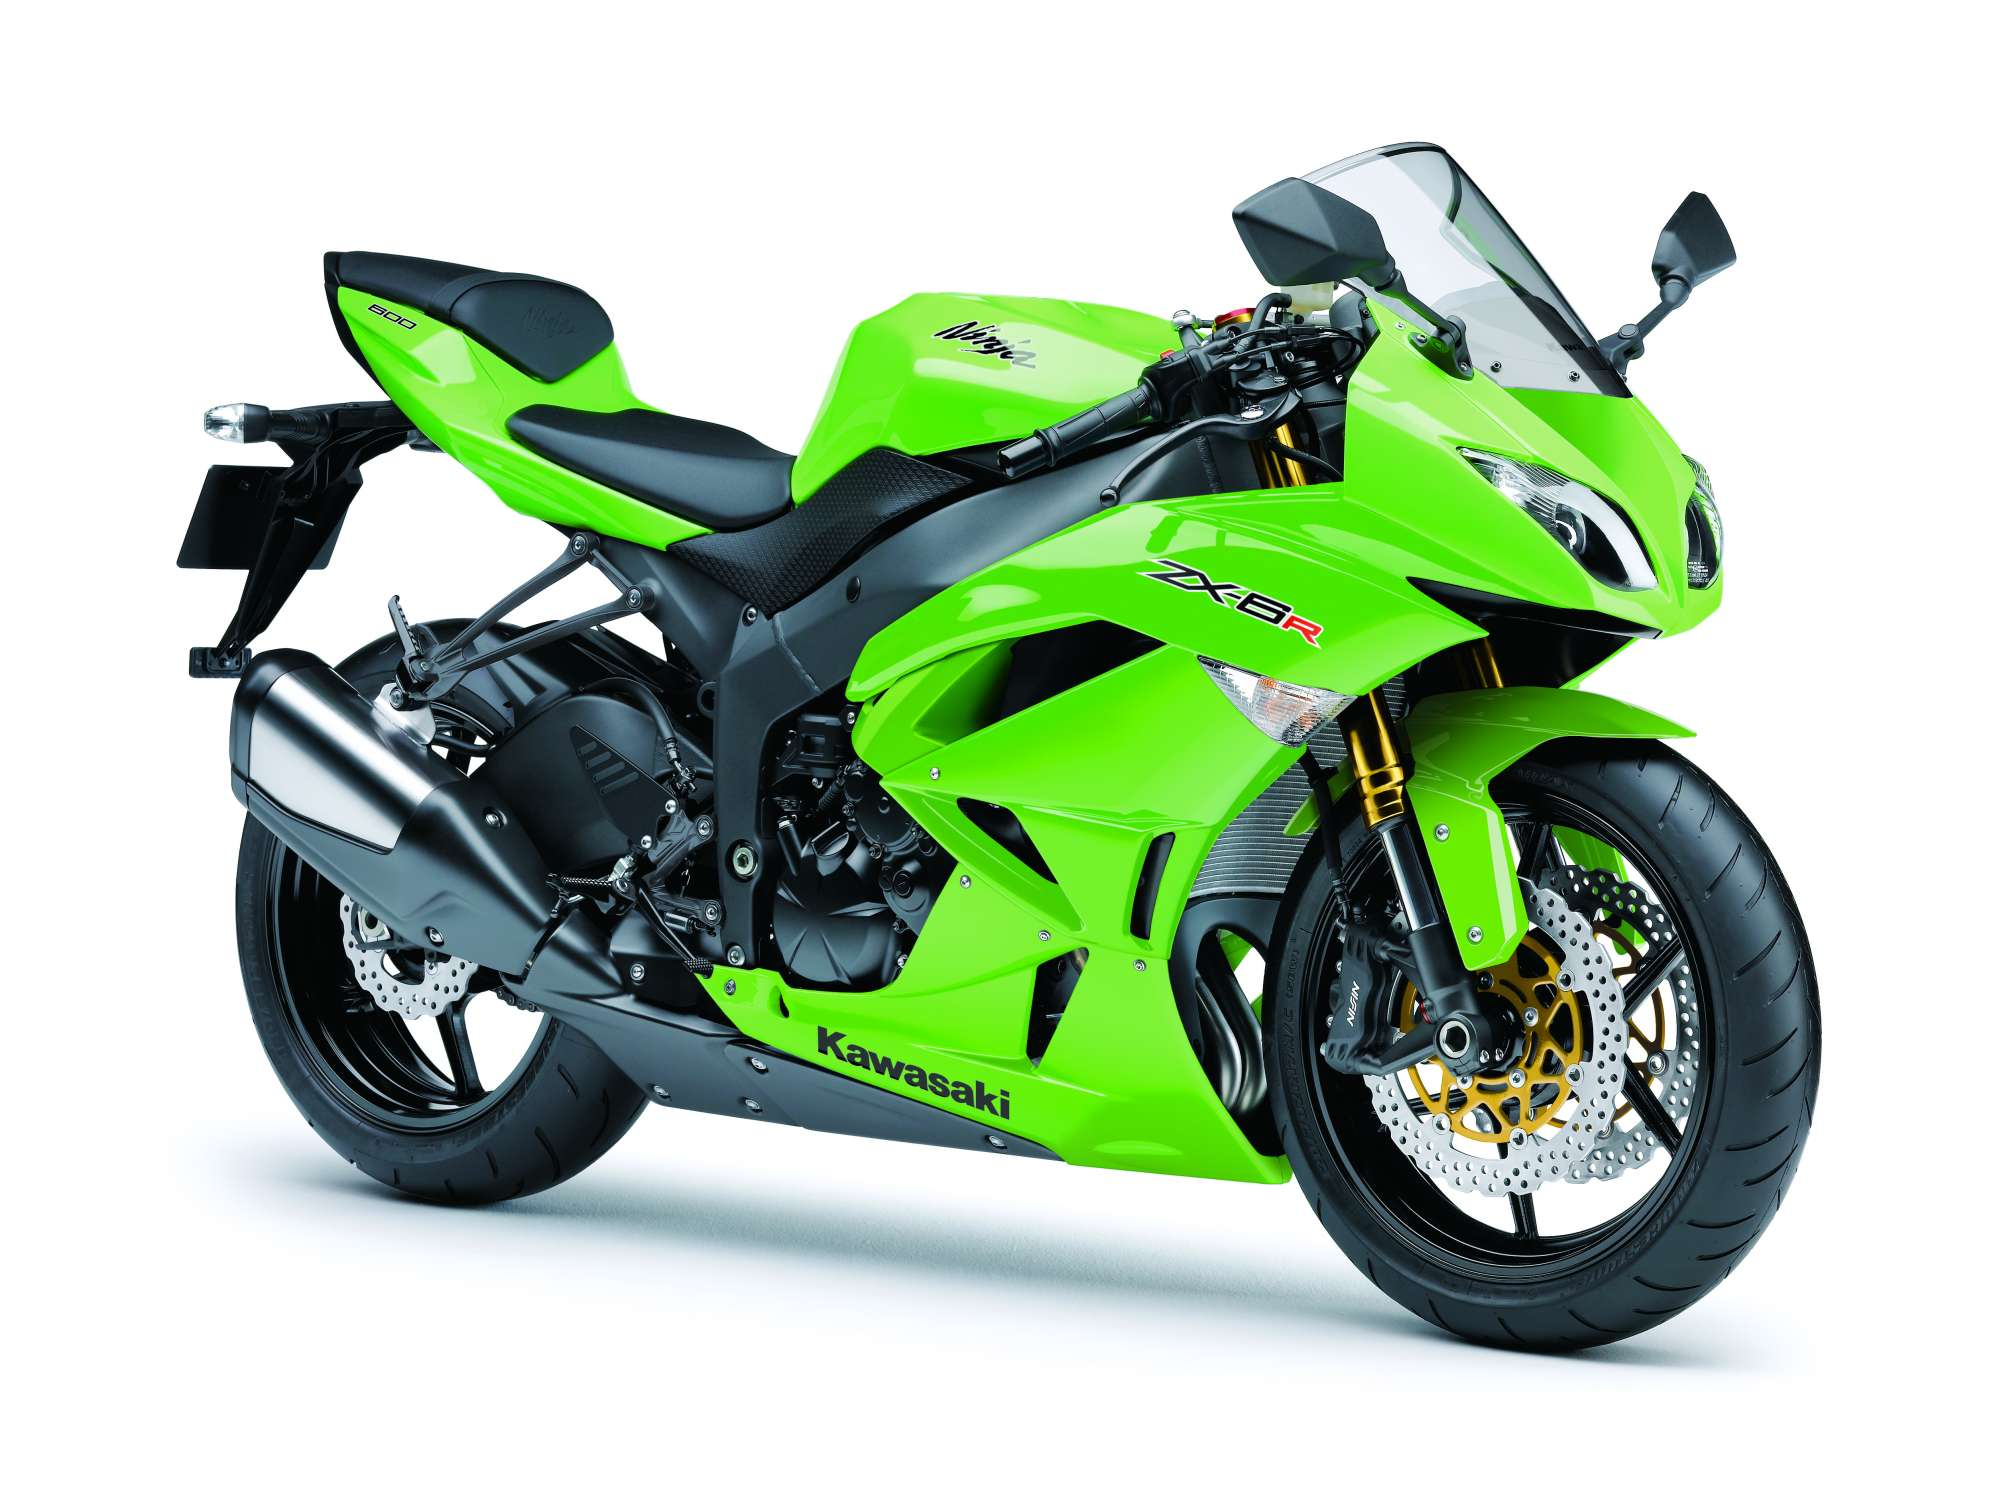 kawasaki zx 6r ninja car interior design. Black Bedroom Furniture Sets. Home Design Ideas